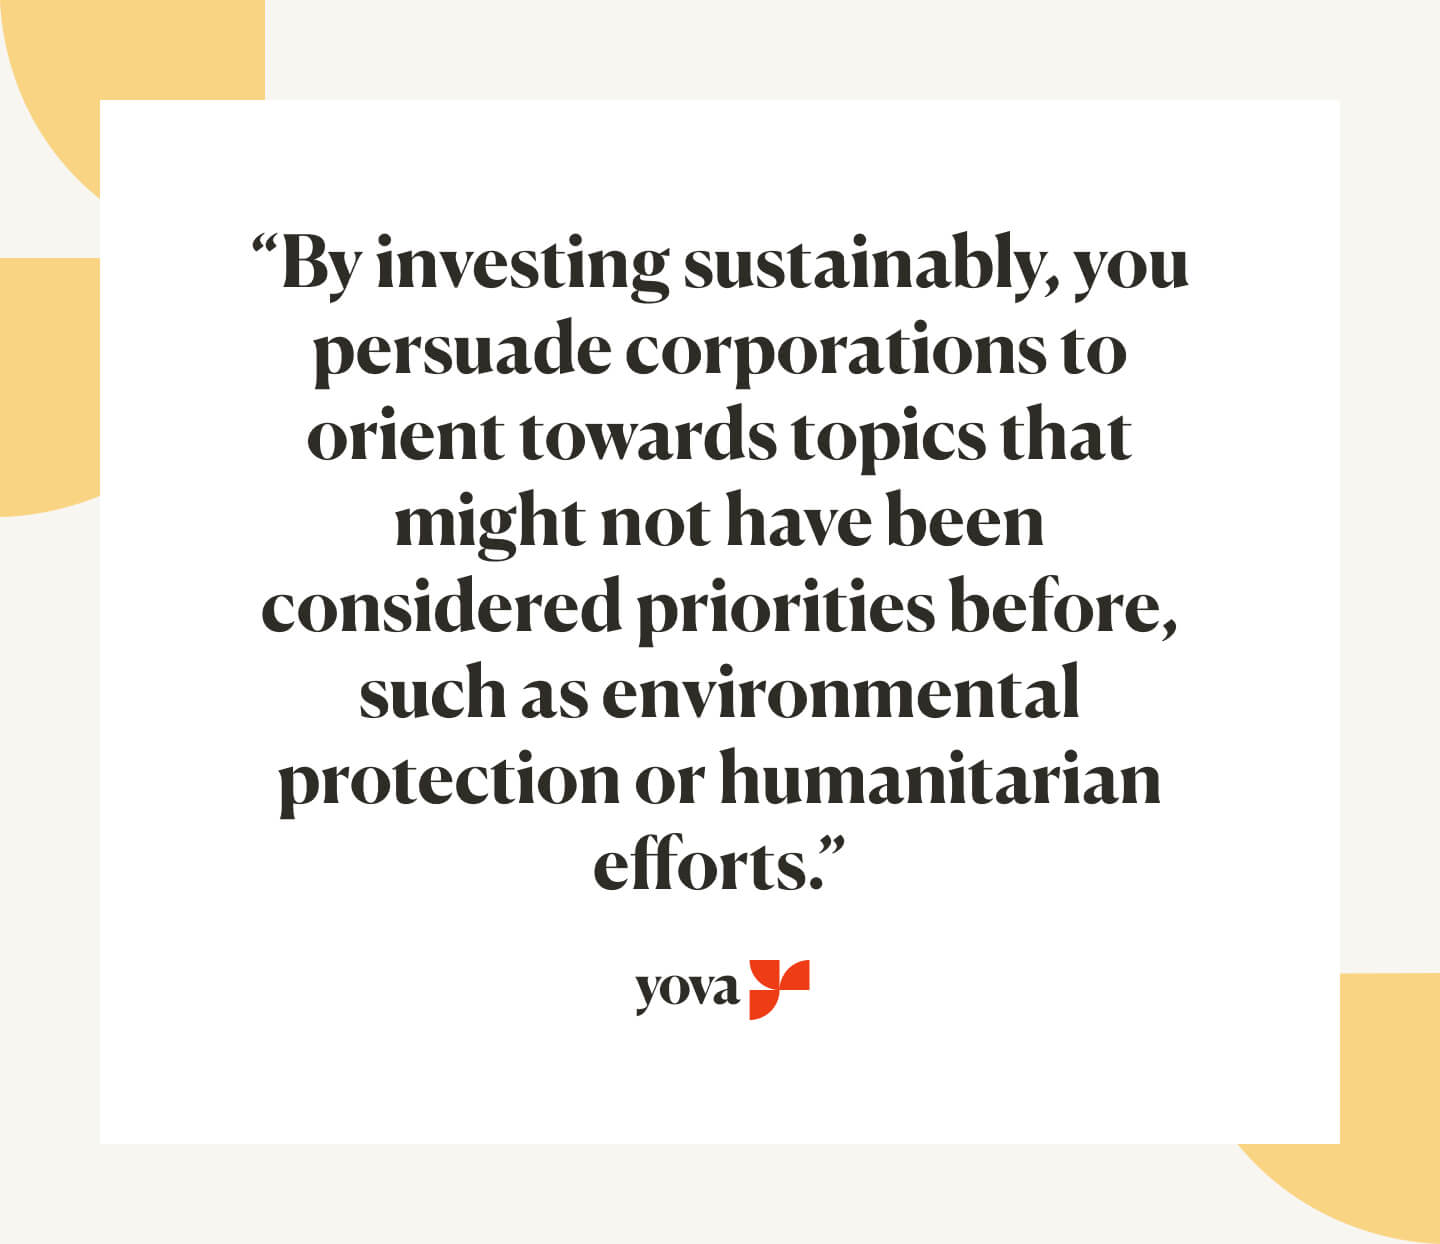 ethically sustainable investing Germany Yova